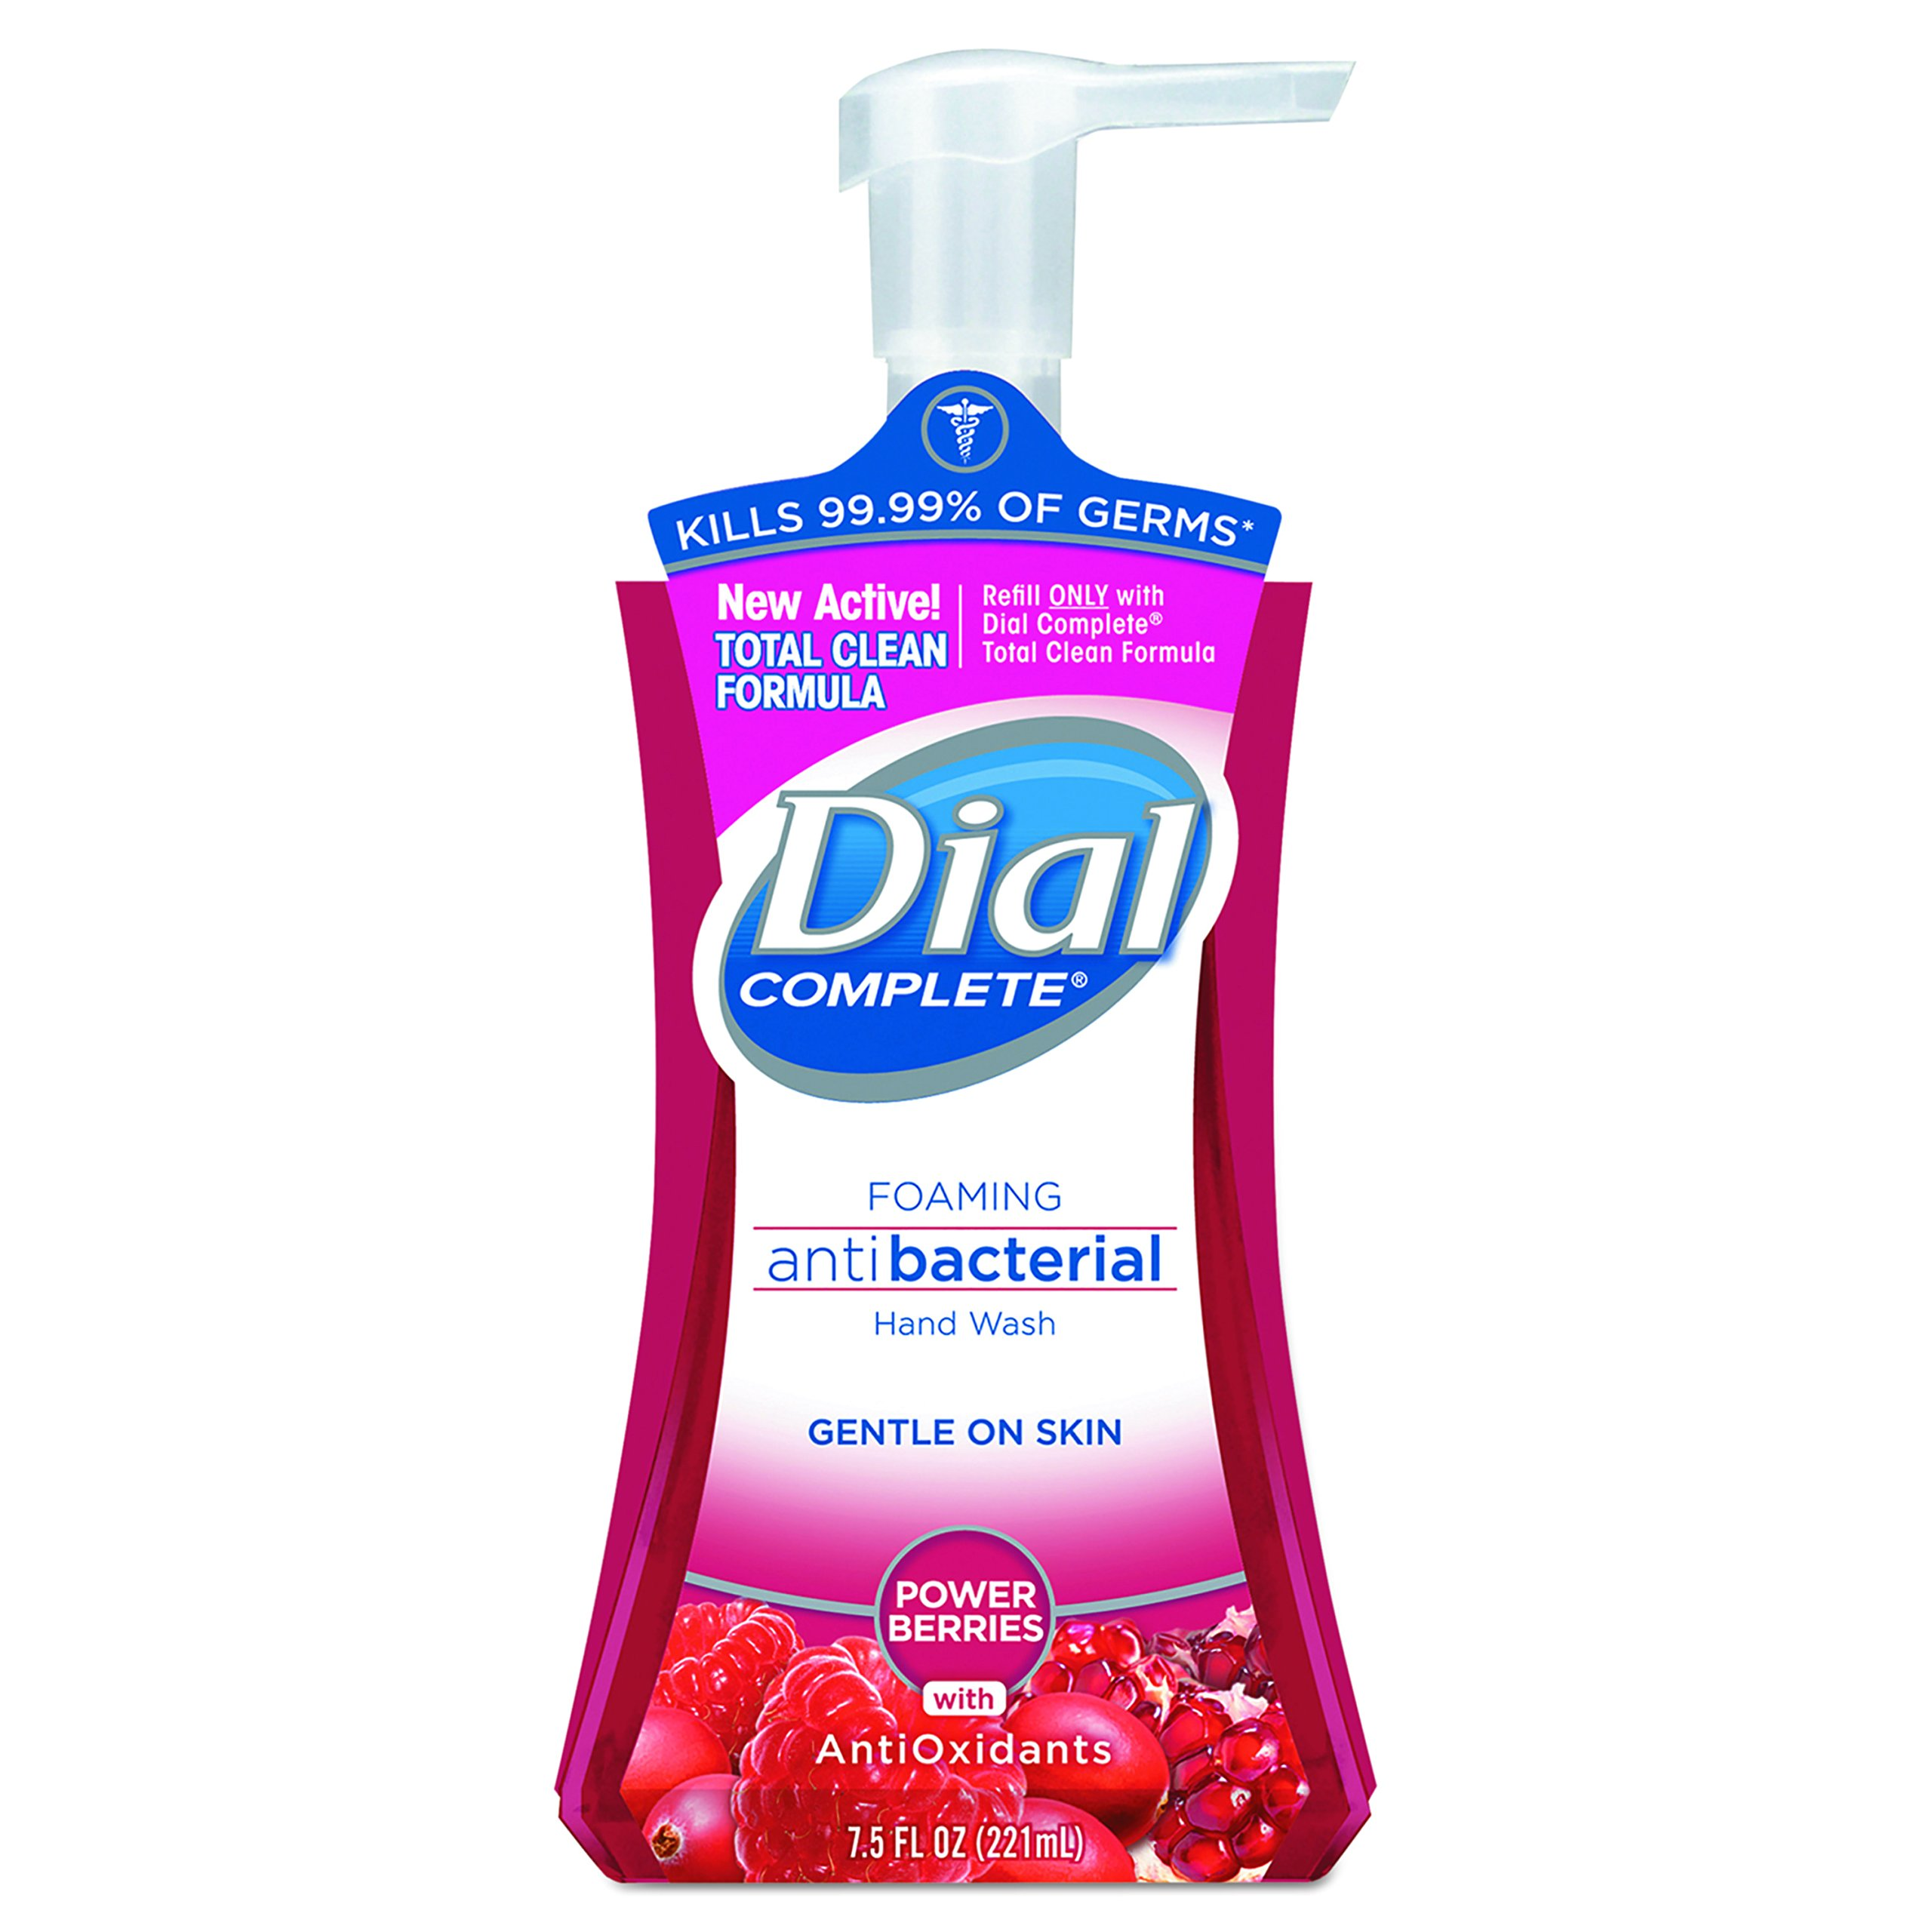 Dial 03016 Antibacterial Foaming Hand Wash, Power Berries, 7.5 oz Pump Bottle (Case of 8)